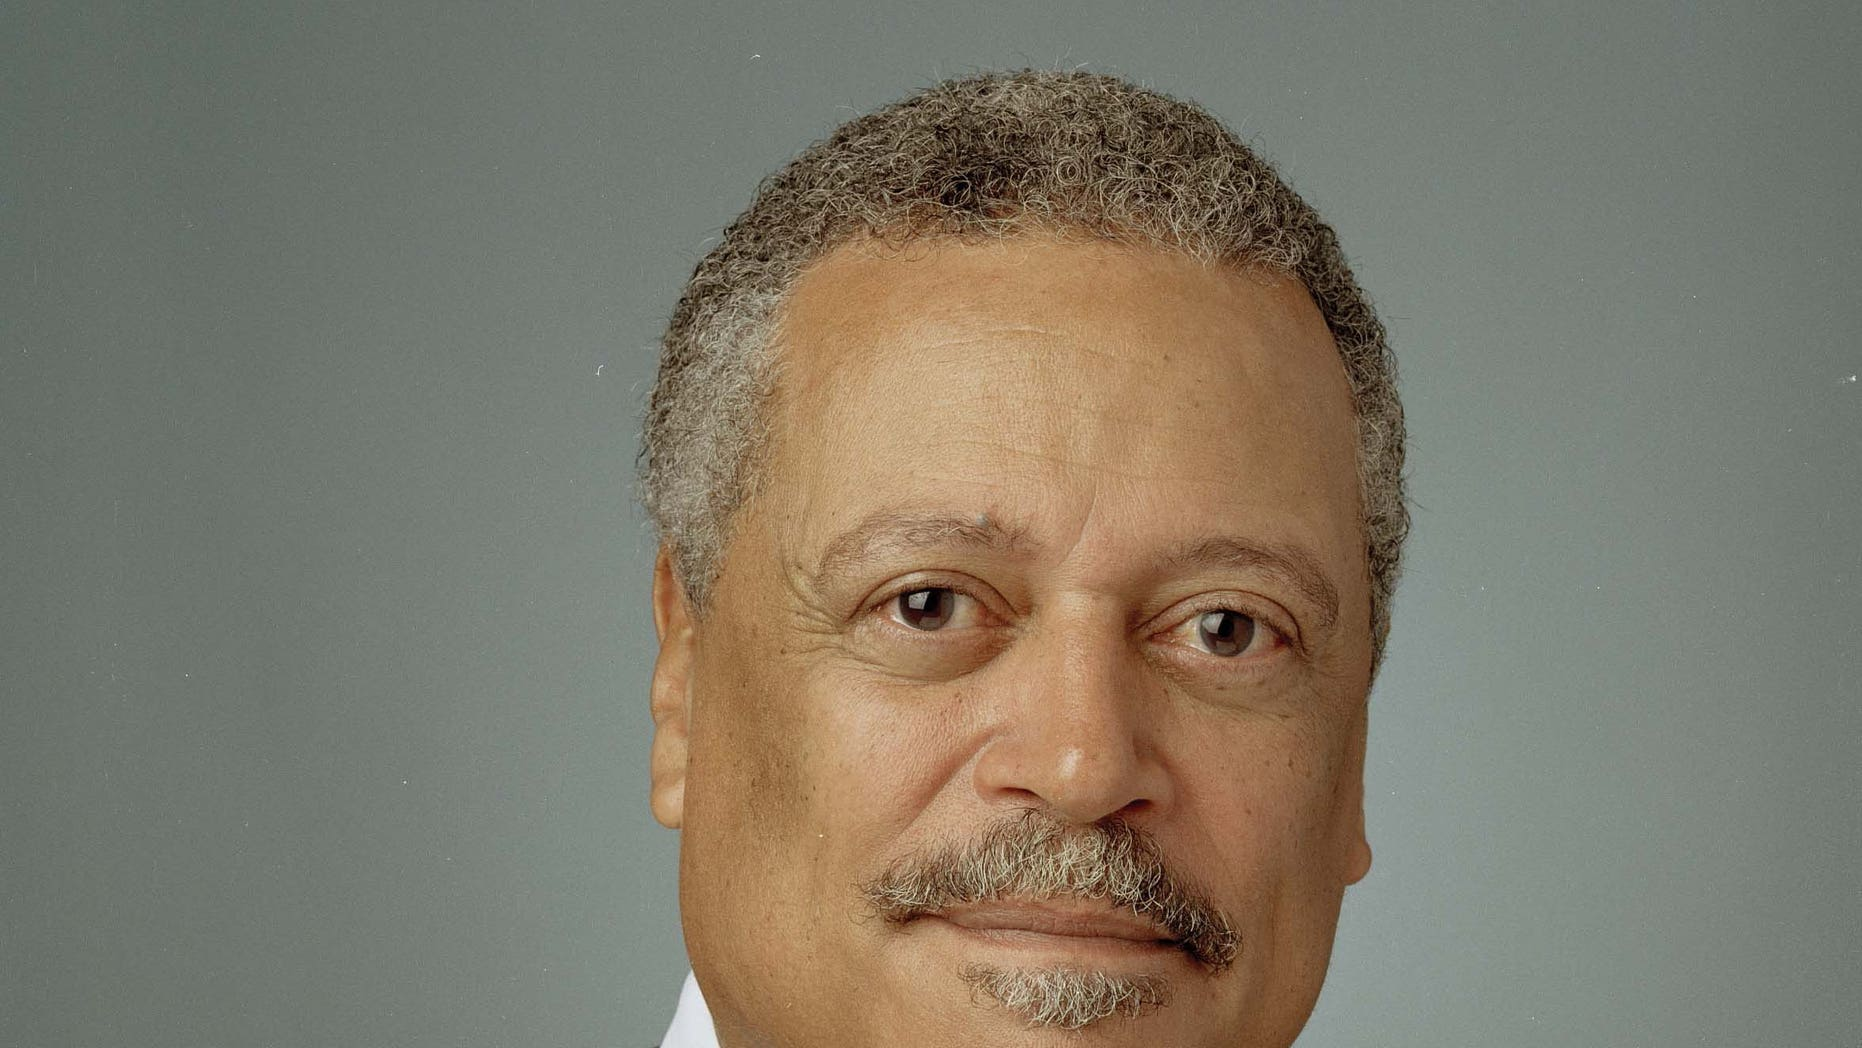 Judge Emmet Sullivan has been appointed to positions by both Republican and Democratic presidents.